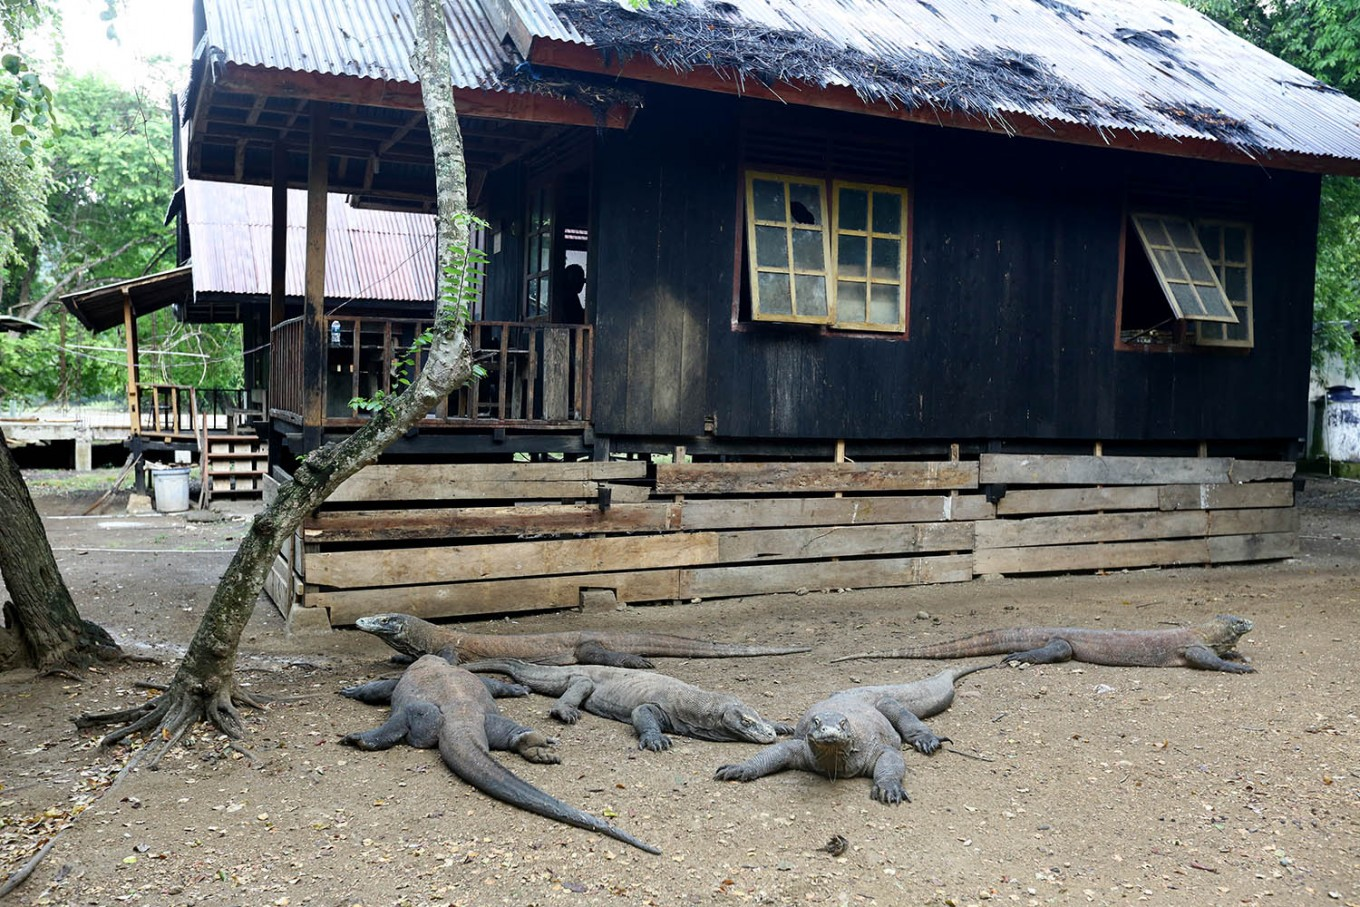 Project in Komodo park to support tourism: Environment ministry